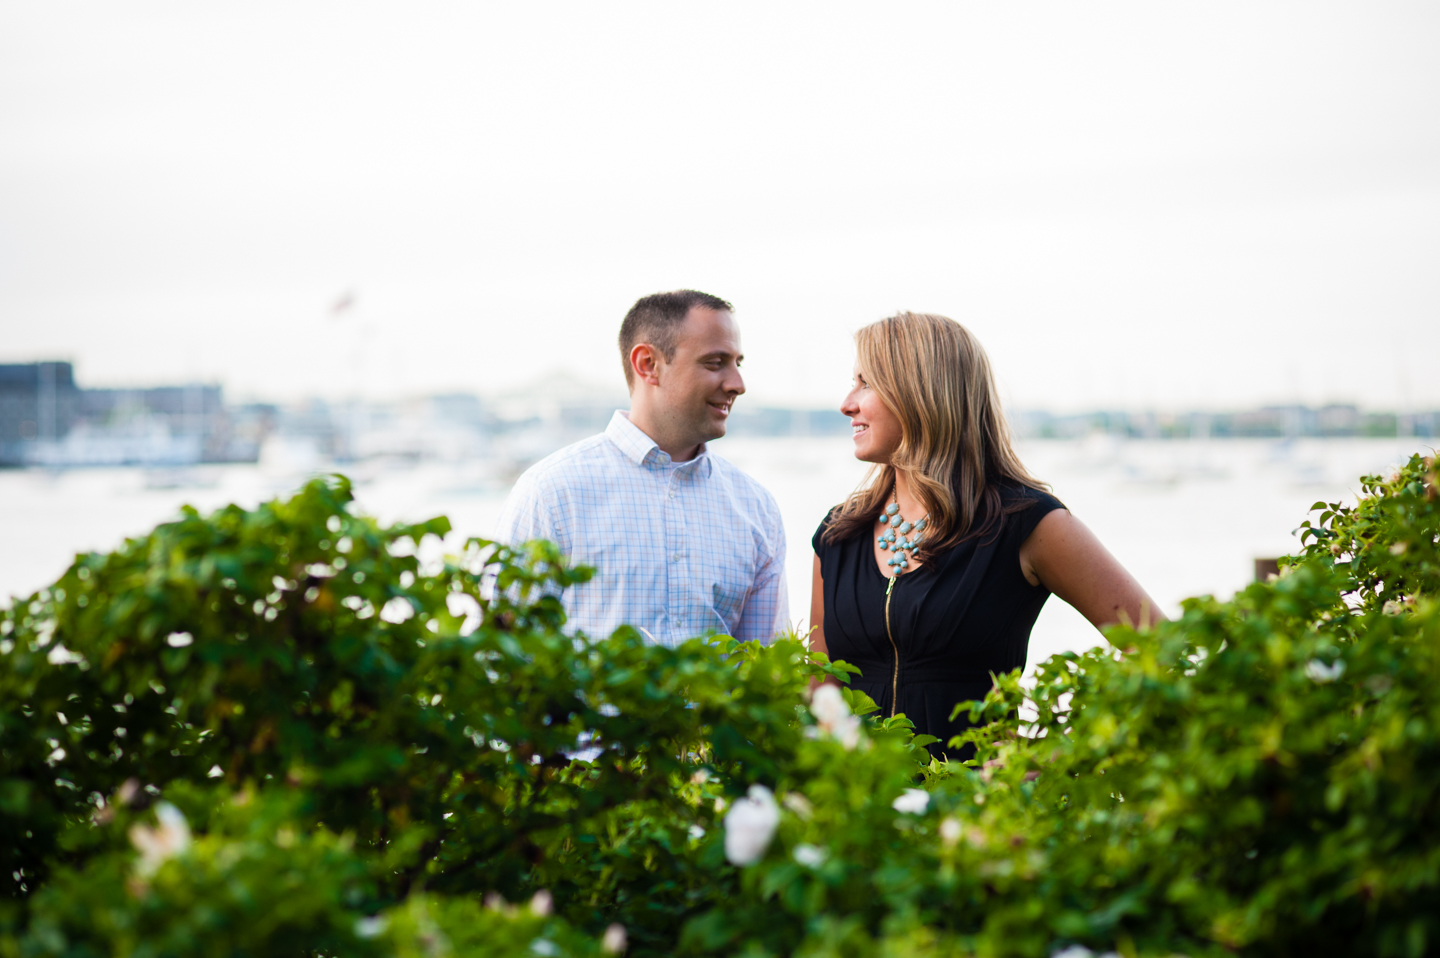 adorable couple steals a glance at one another during their engagement session